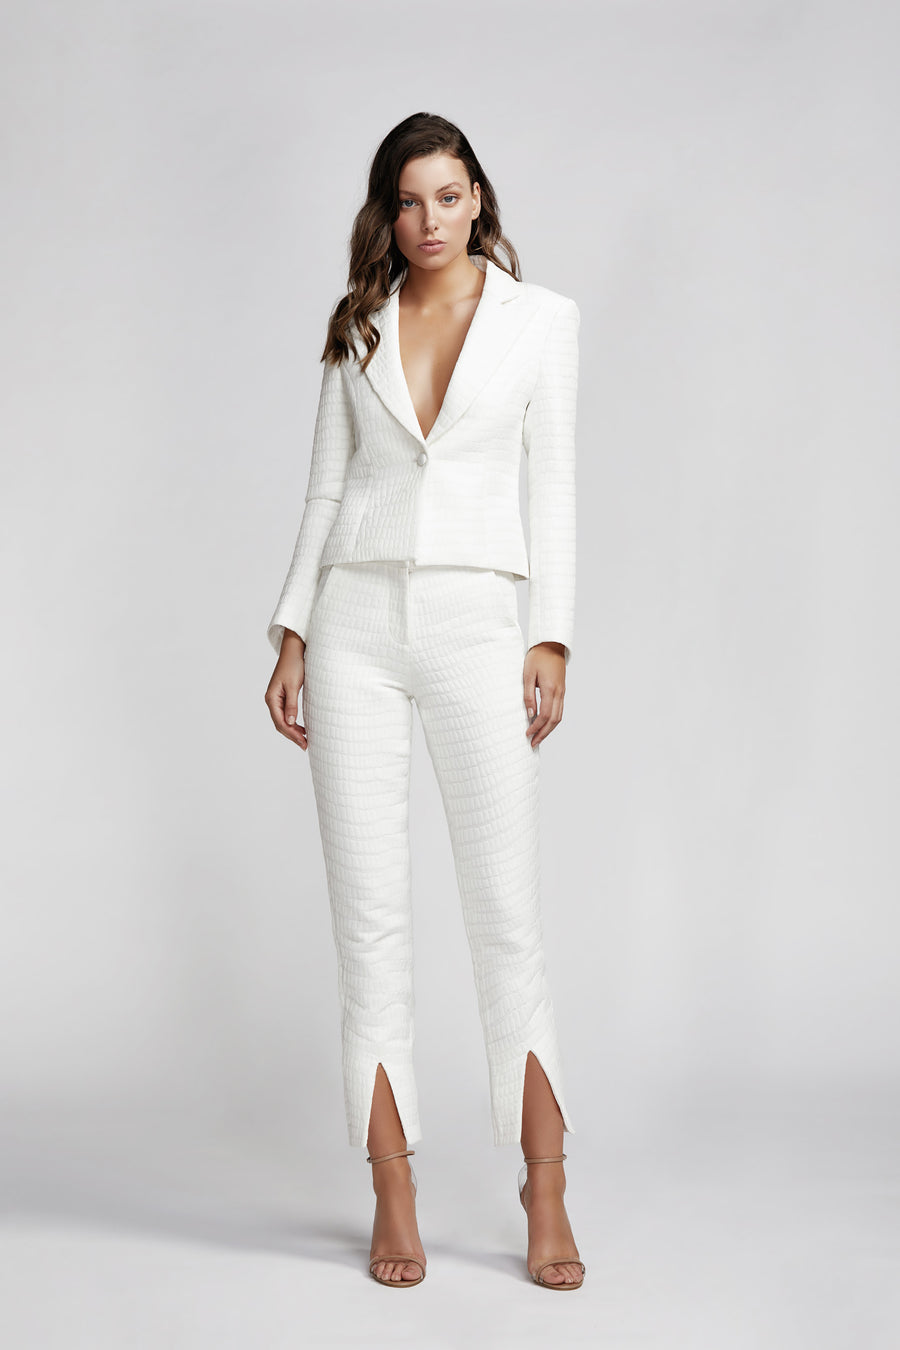 Esmeralda Single Breasted Jacket - White